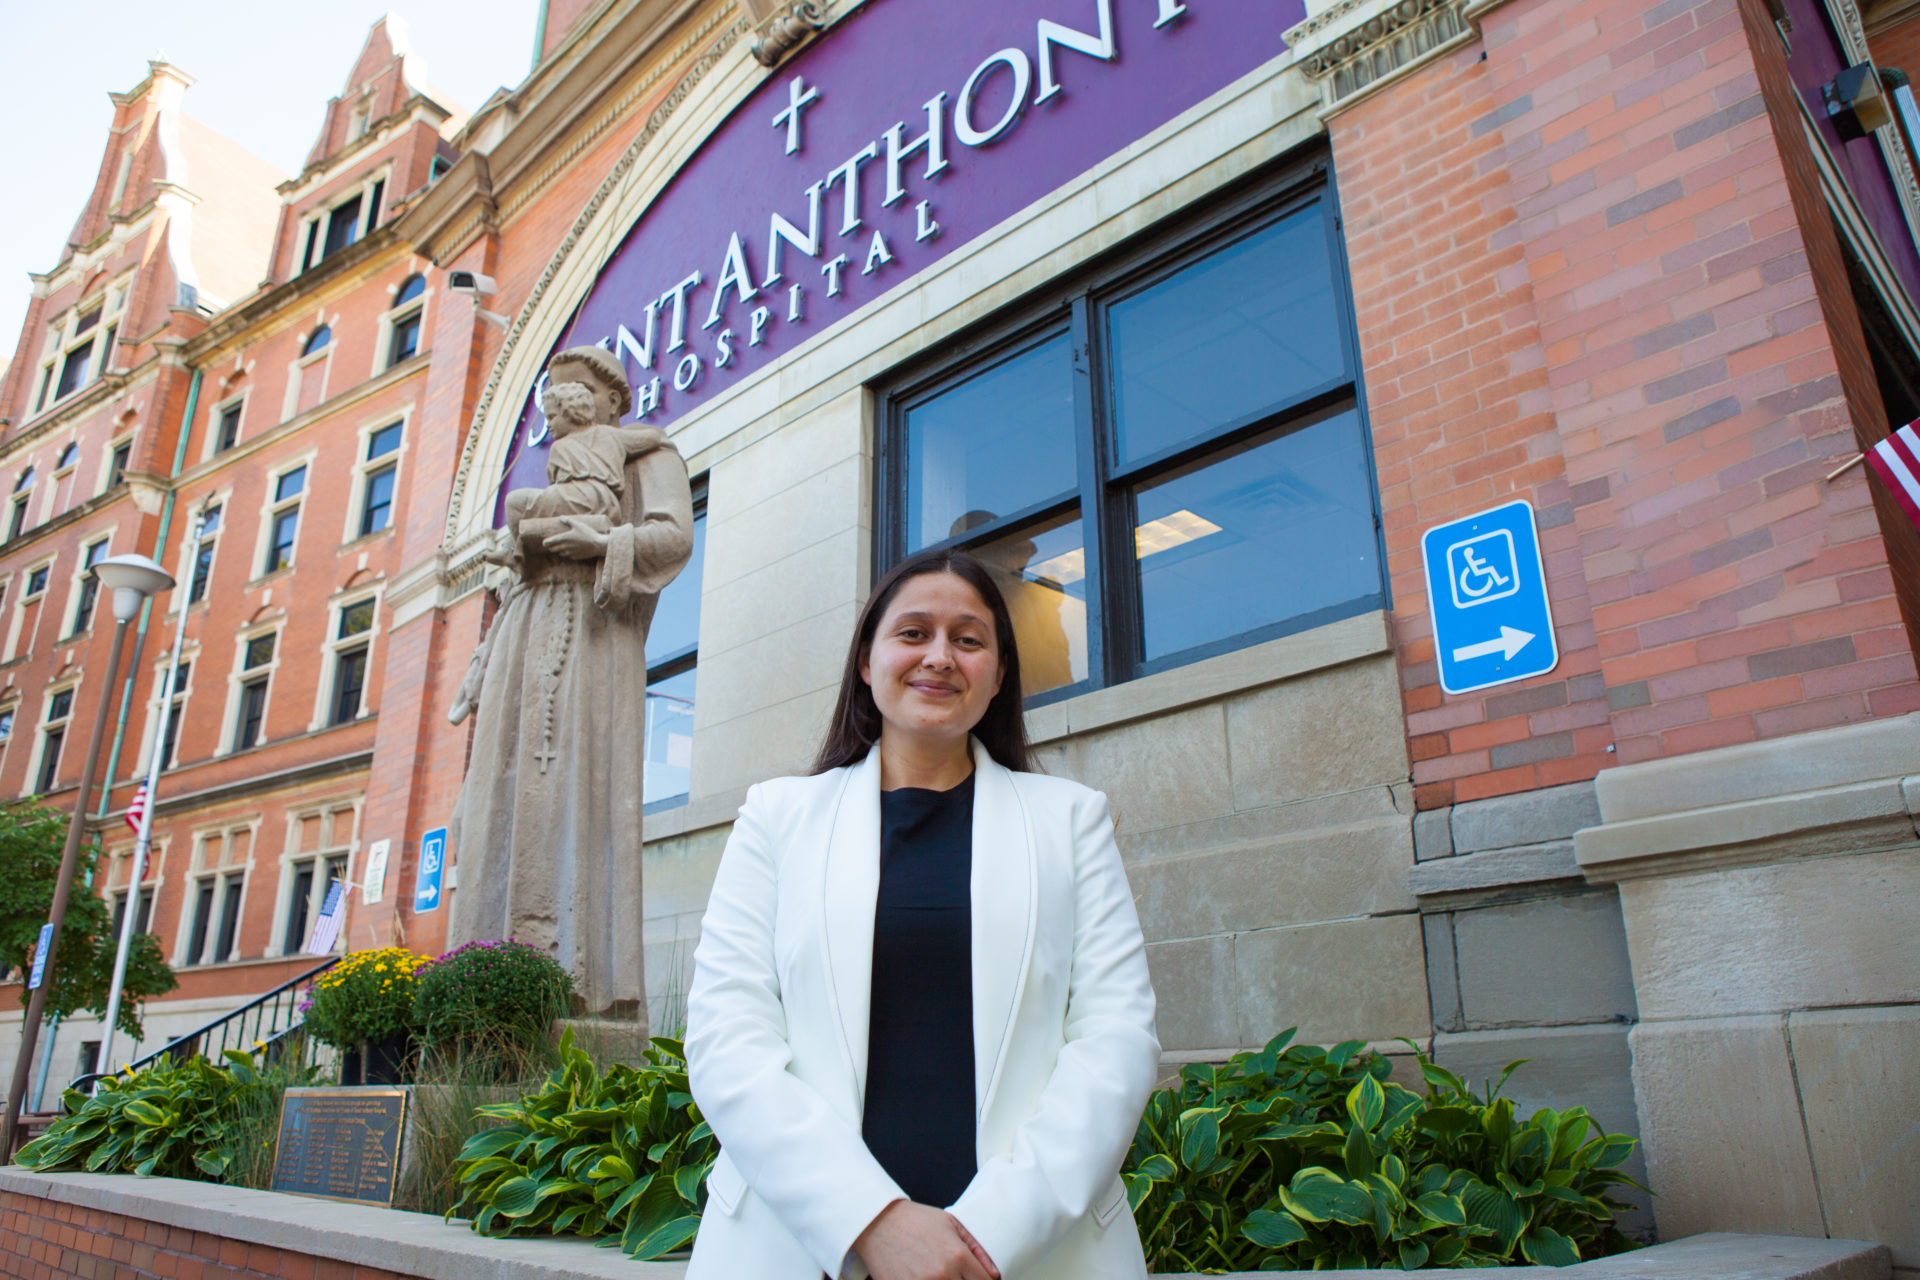 Following a 2019 third party agreement, the partnership between AMO and Saint Anthony sends a bi-annual cohort of trainees from UAG to Saint Anthony Hospital in Chicago.